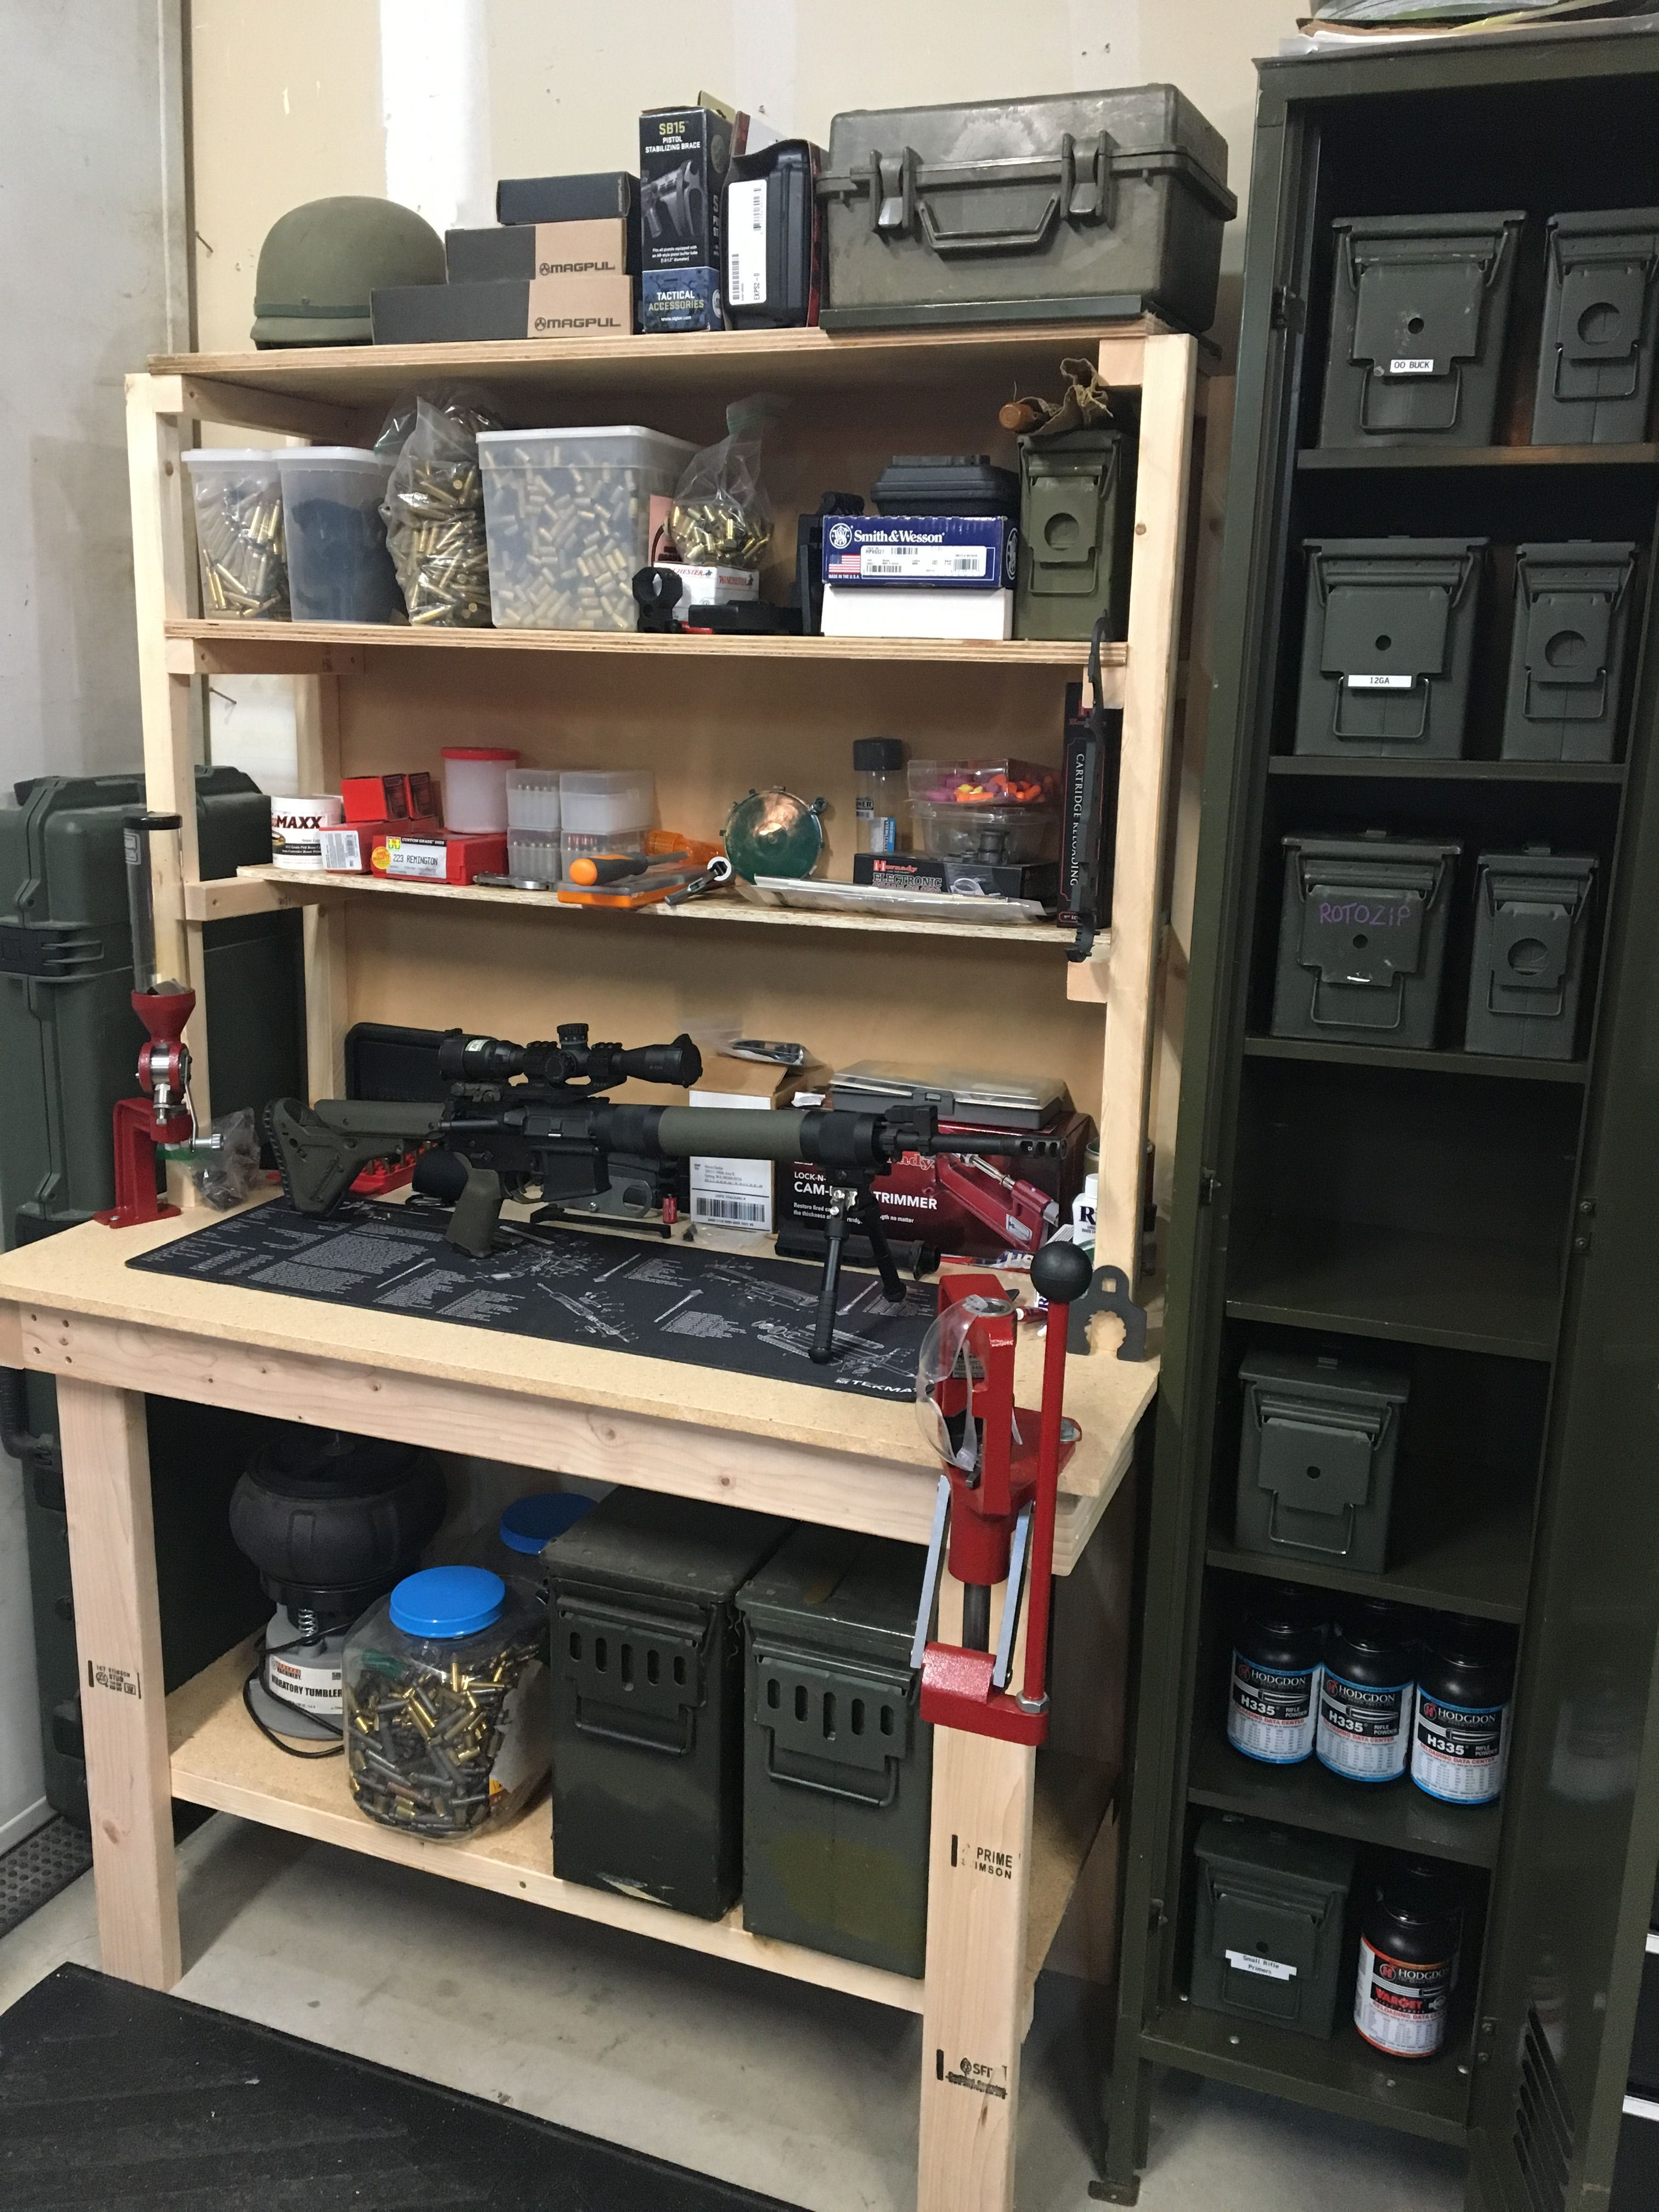 Stupendous Reloading Bench Made From Scrap Wood And Ammo Storage Locker Beatyapartments Chair Design Images Beatyapartmentscom